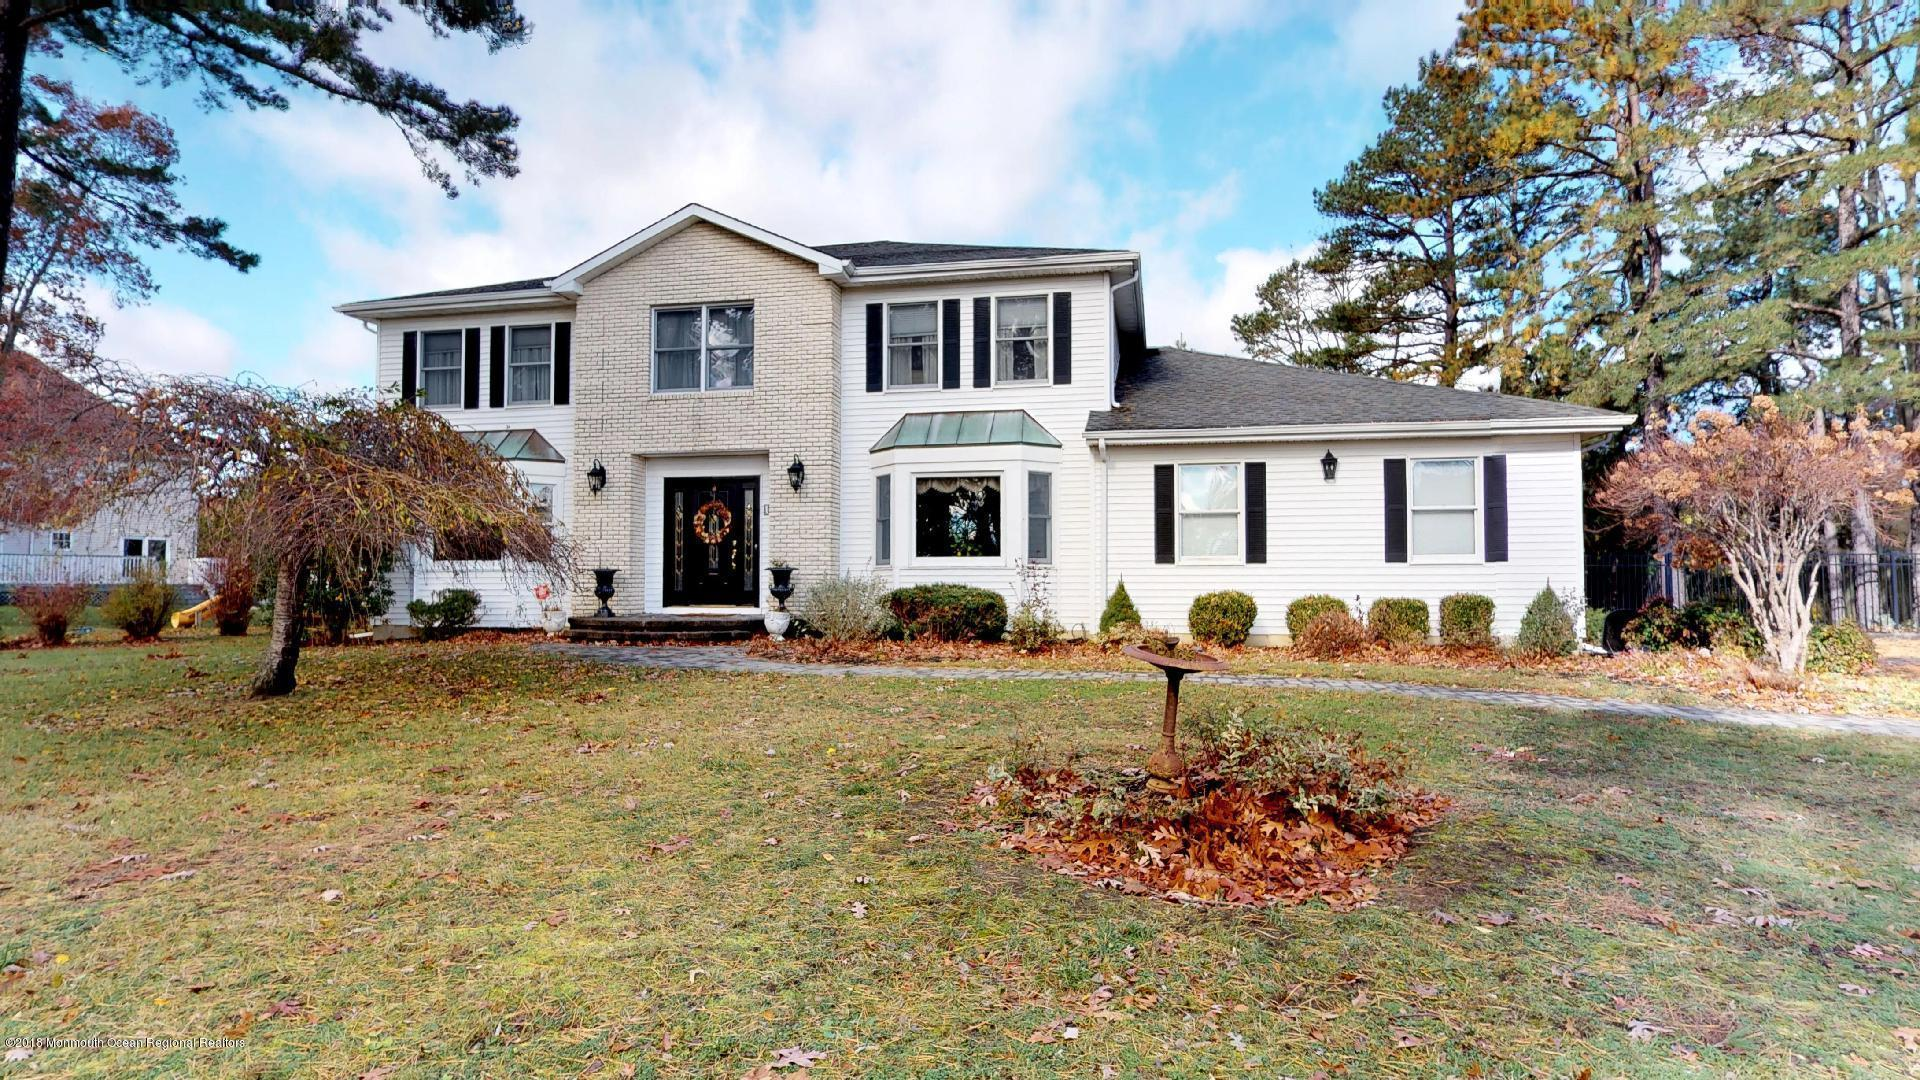 18-Sandy-Lane-Eatontown-NJ-Front-Elev_1